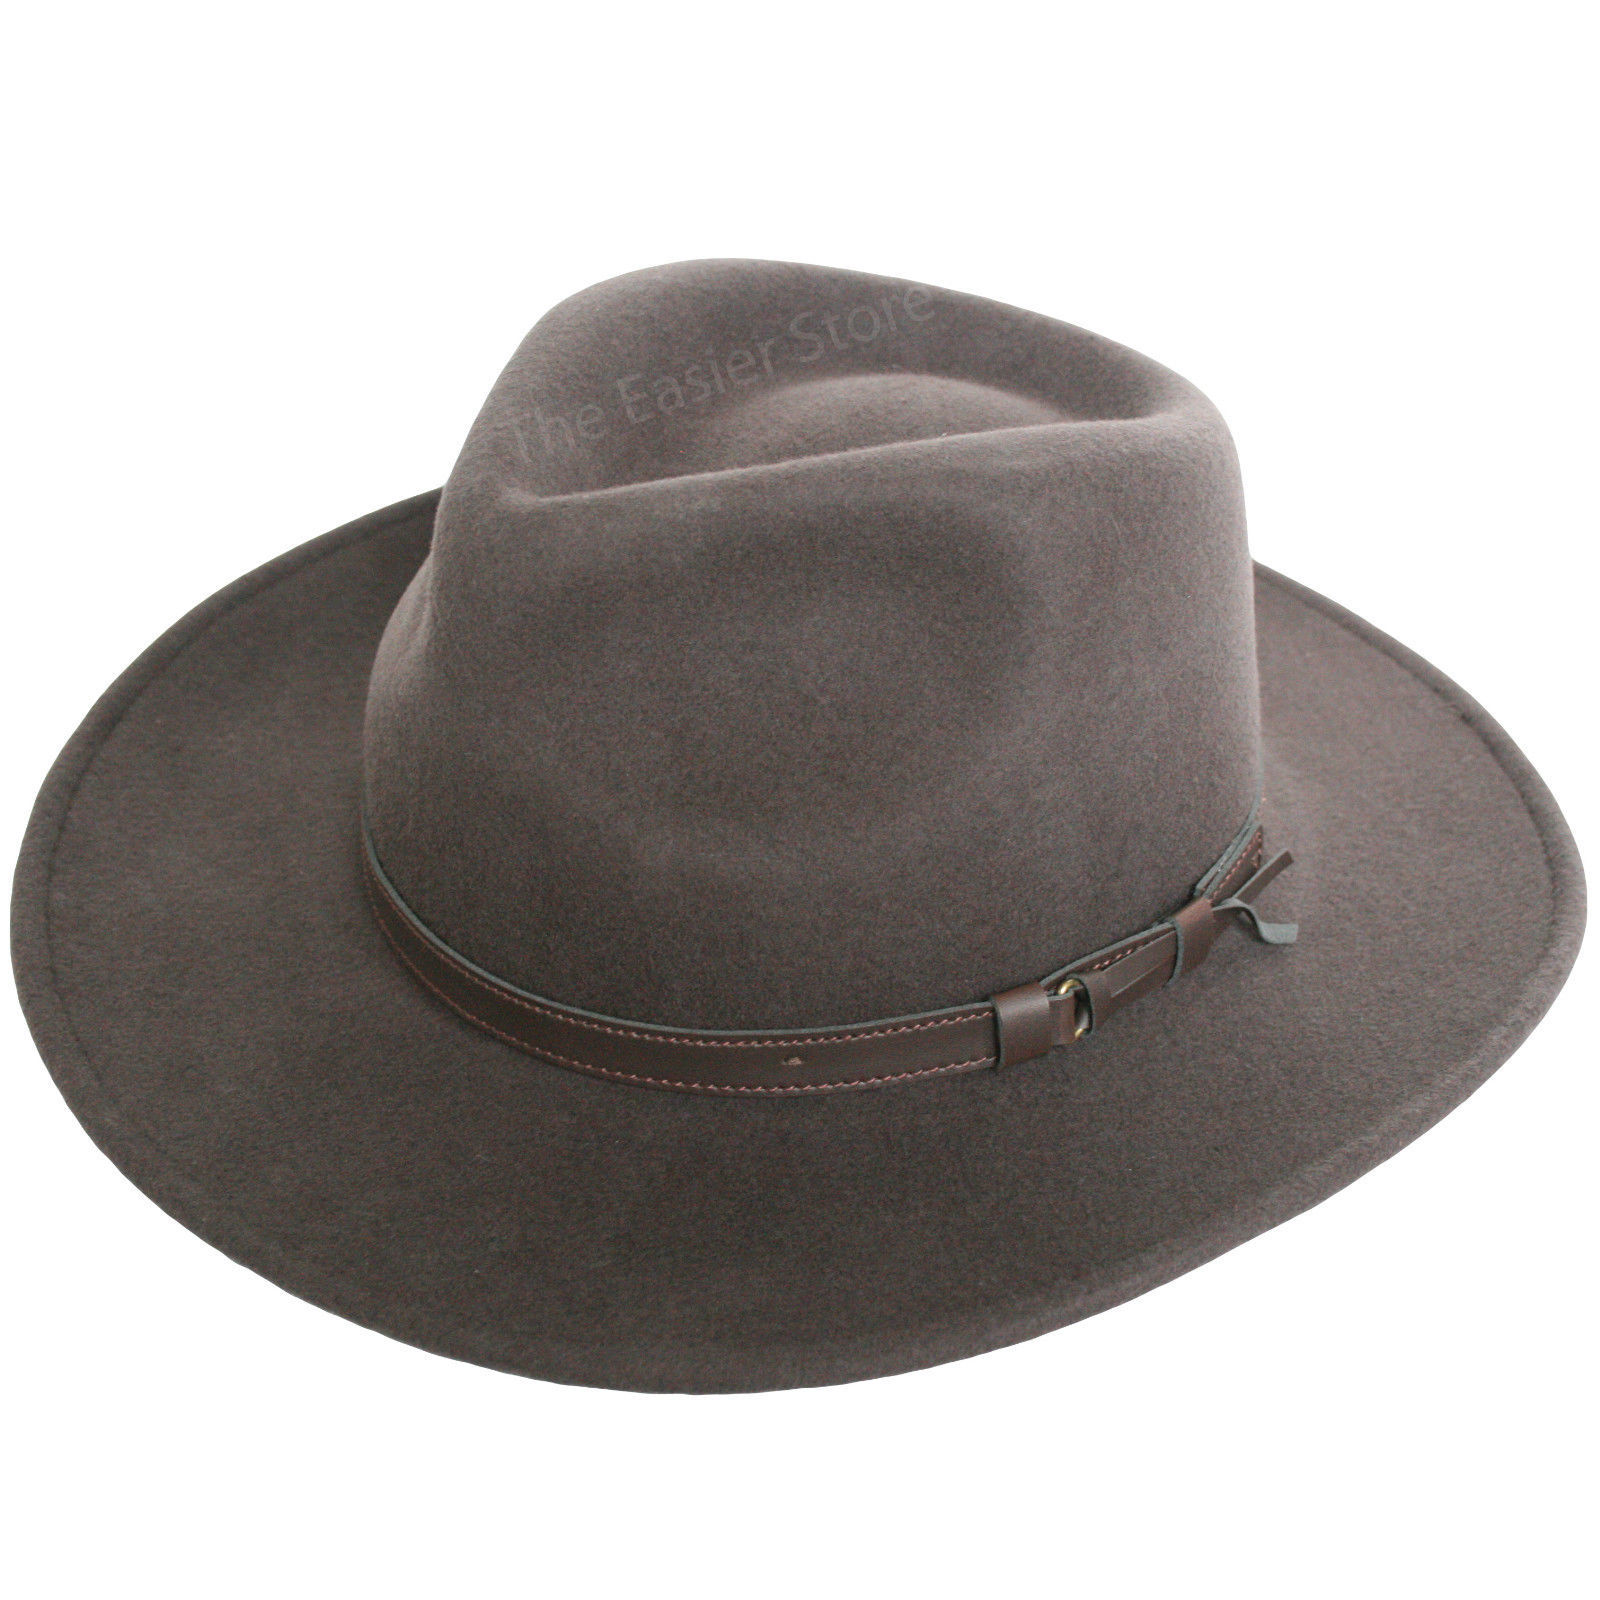 The Classic Trilby The Trilby derives its name from a play based on George du Maurier's novel Trilby, after such a style of hat was worn in the first London stage adaptation.